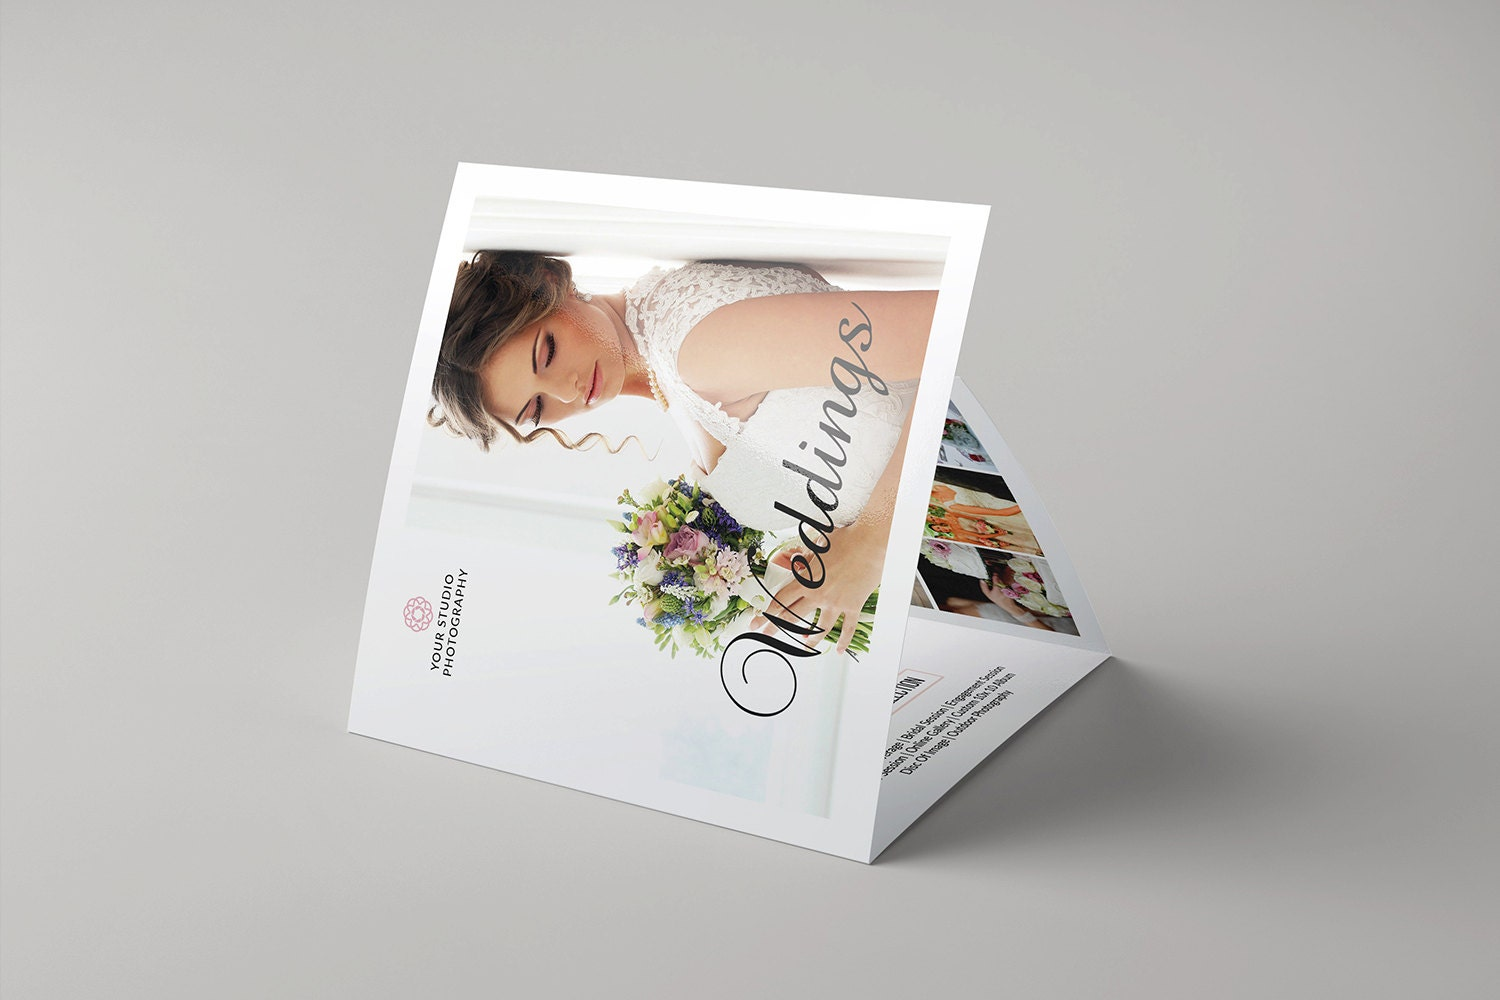 Wedding photography brochure template 5x5 in square trifold for Wedding photography brochure template